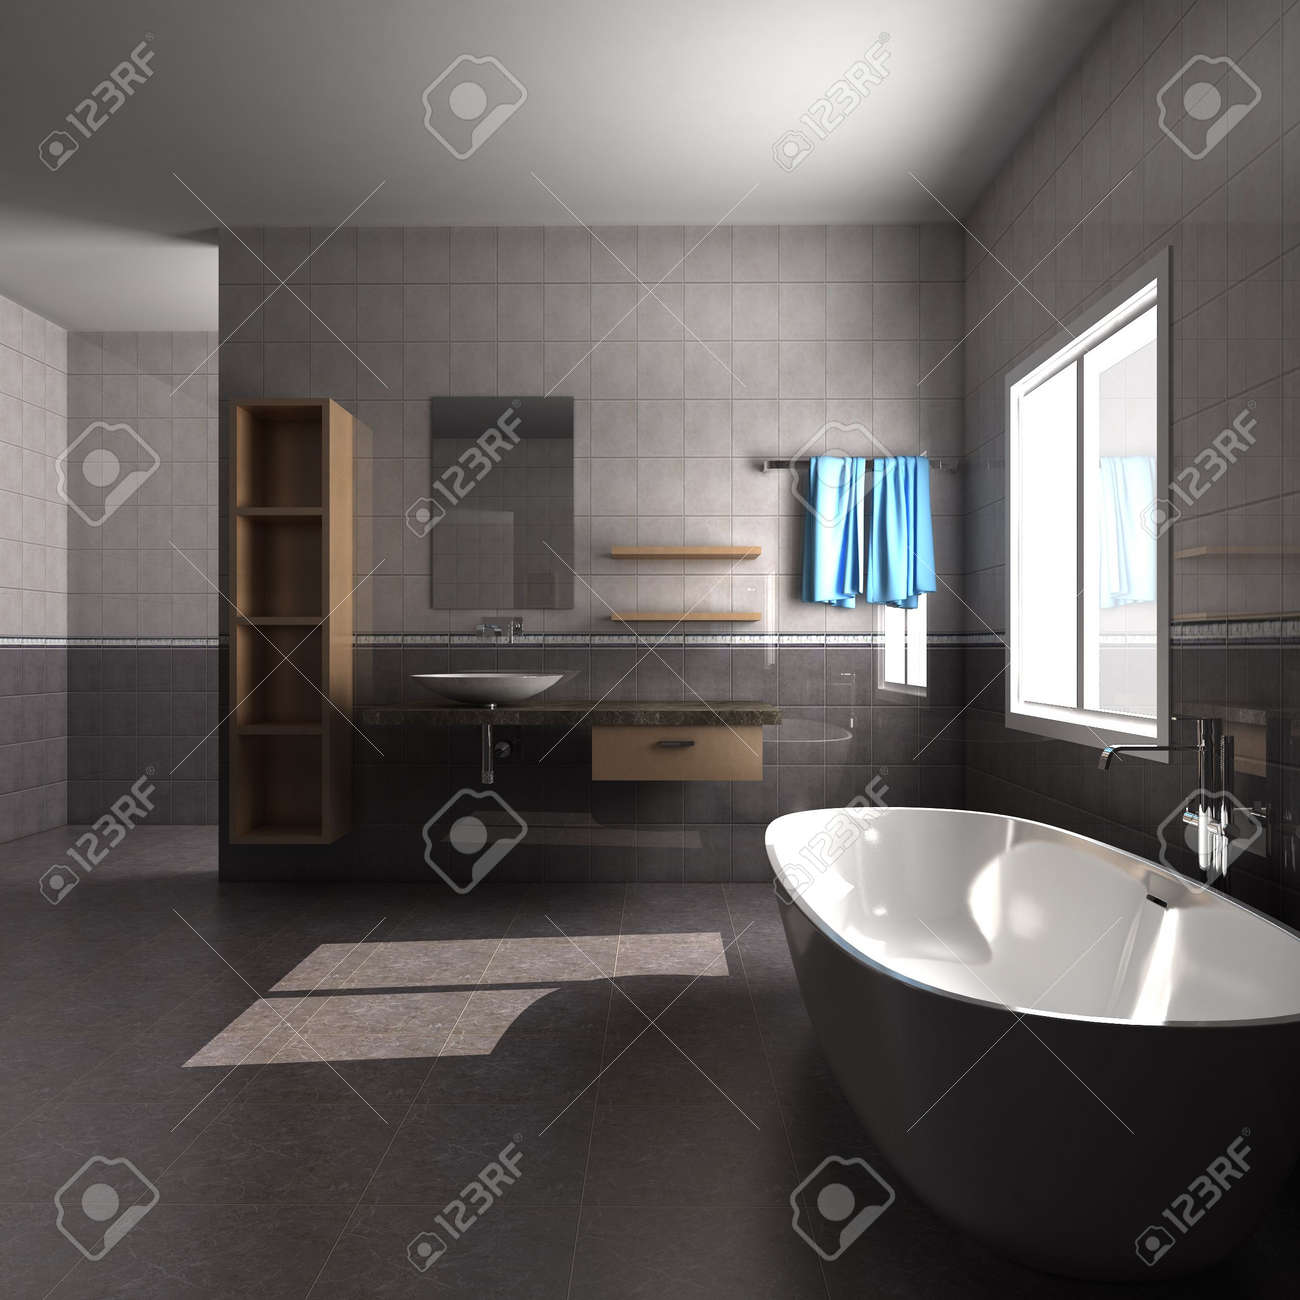 3d rendering interior of a bathroom Stock Photo - 5402039